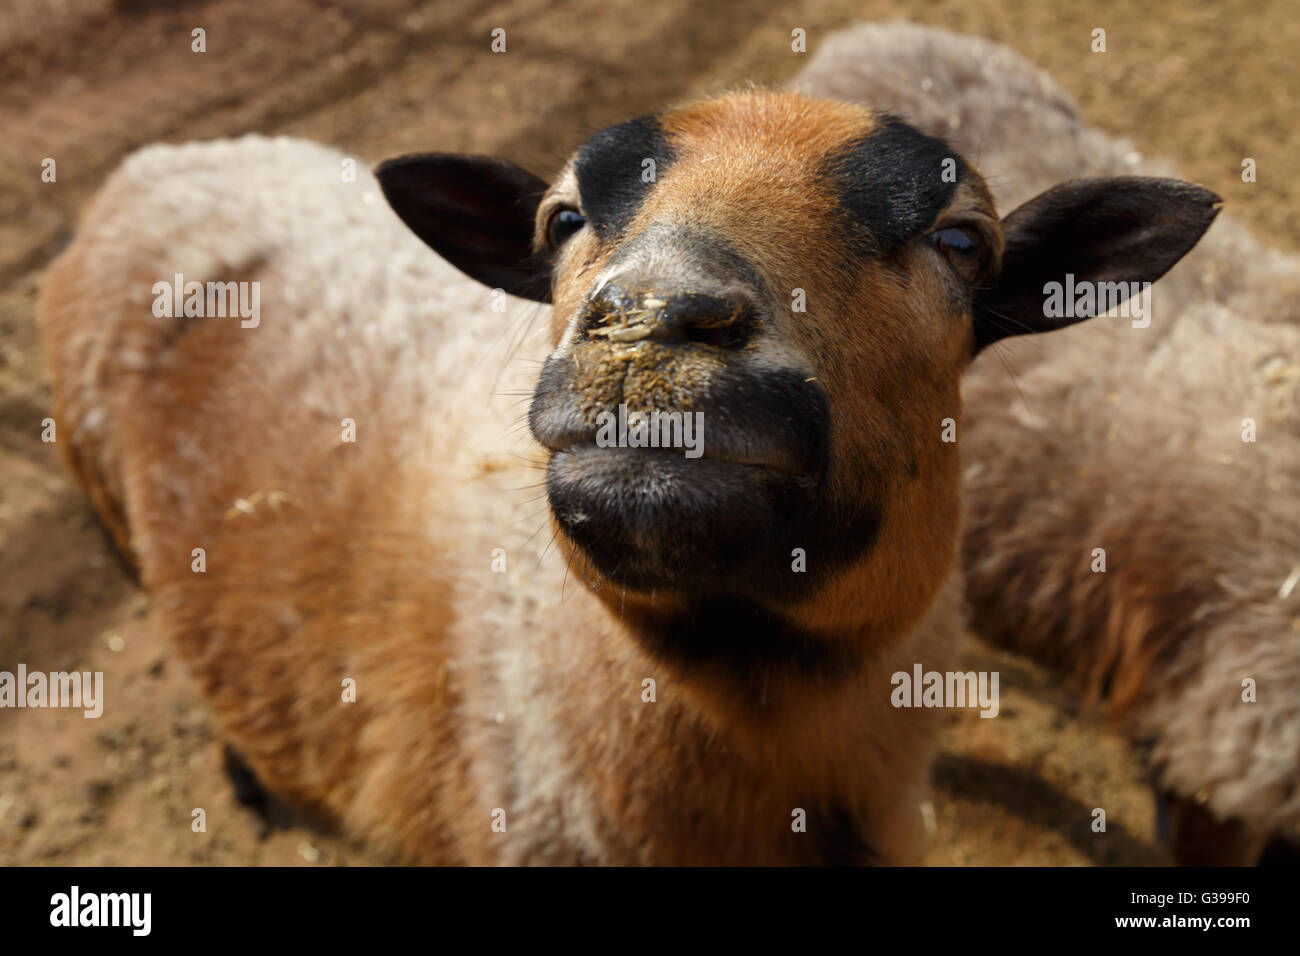 Close up detailed view of sheep living in a zoo. - Stock Image